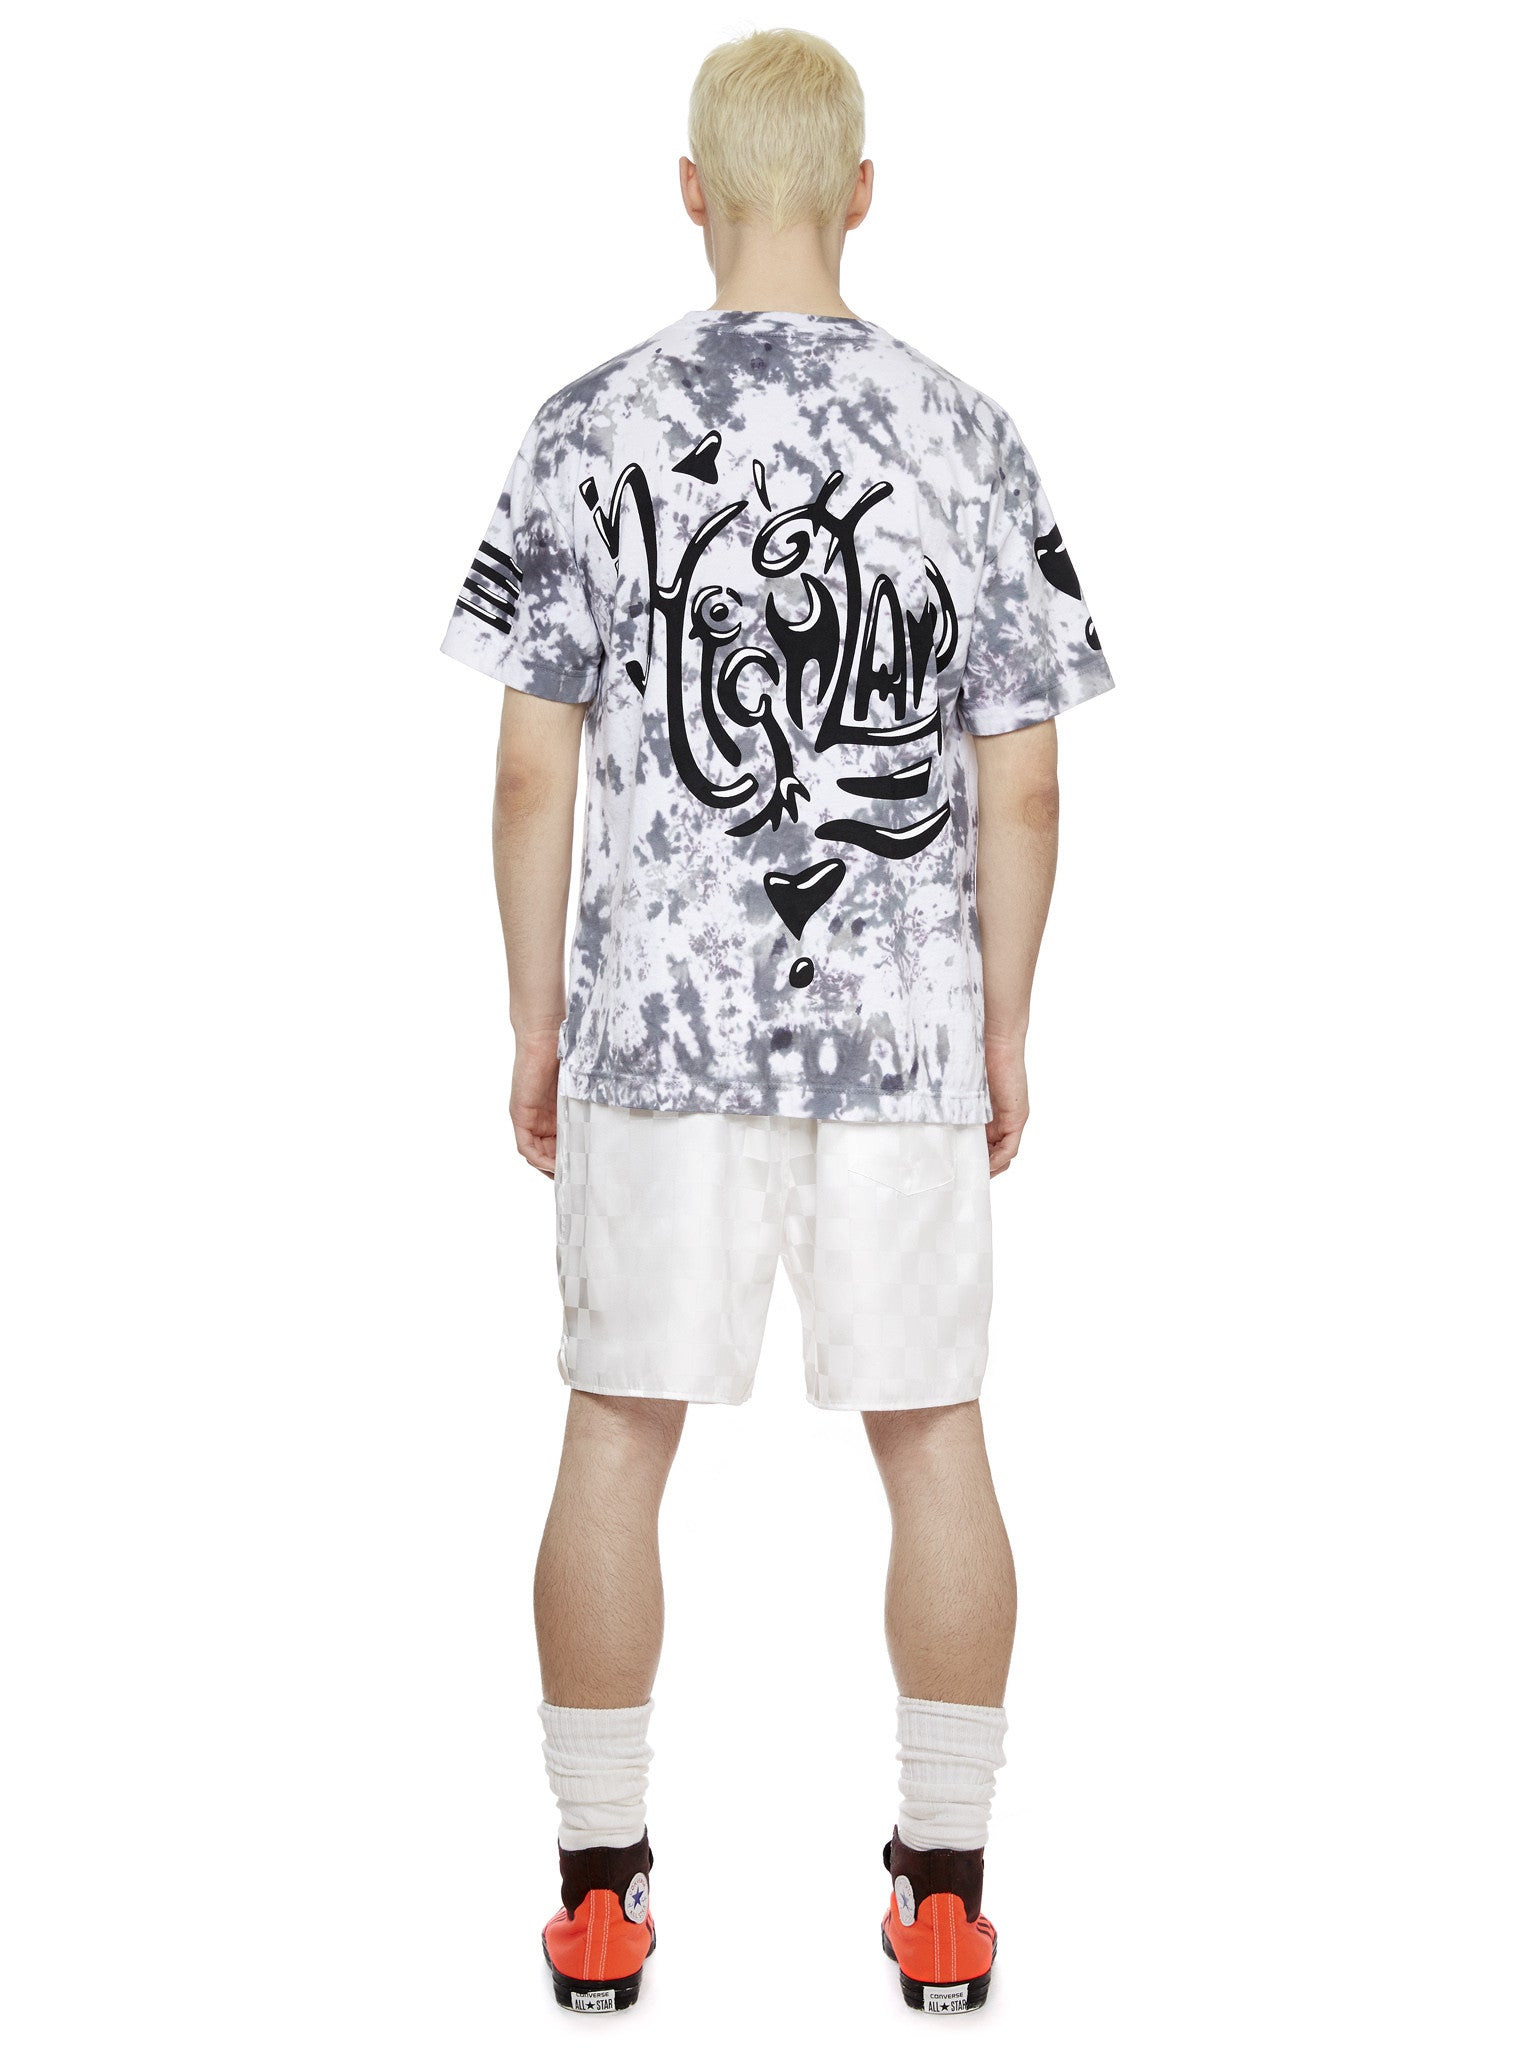 S/S Eyeland T-Shirt in Black